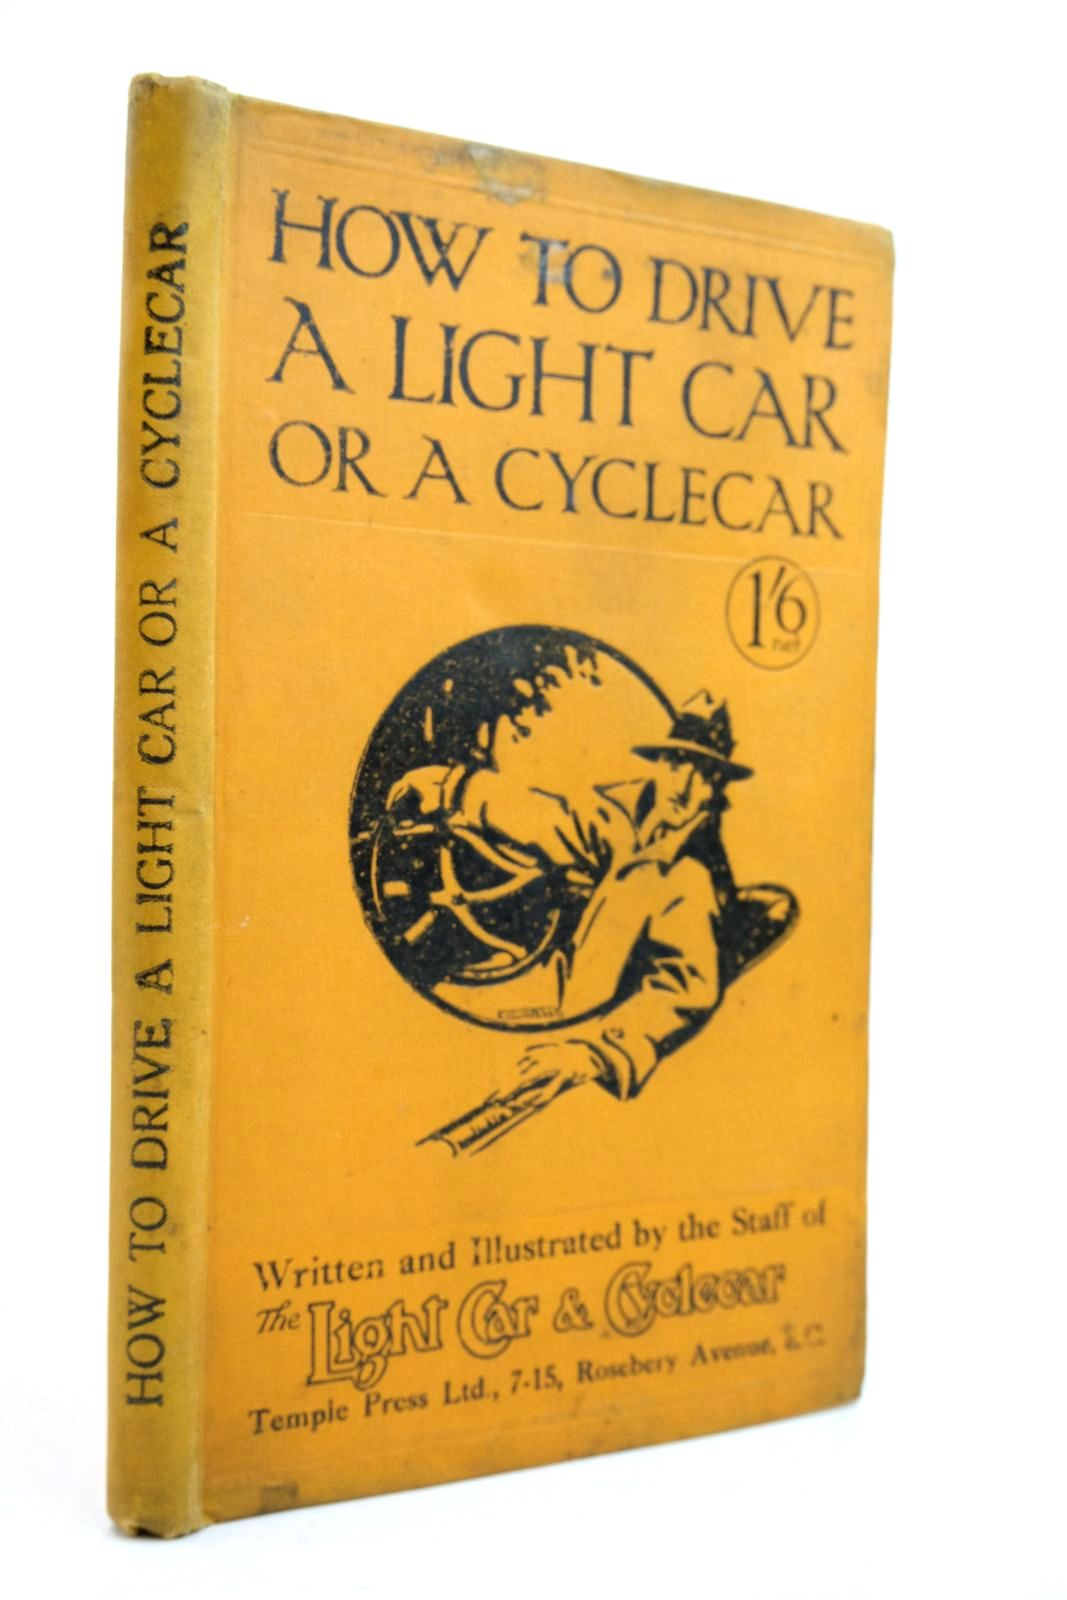 Photo of HOW TO DRIVE A LIGHT CAR OR A CYCLECAR written by Martin, Lionel published by Temple Press Limited (STOCK CODE: 2134568)  for sale by Stella & Rose's Books